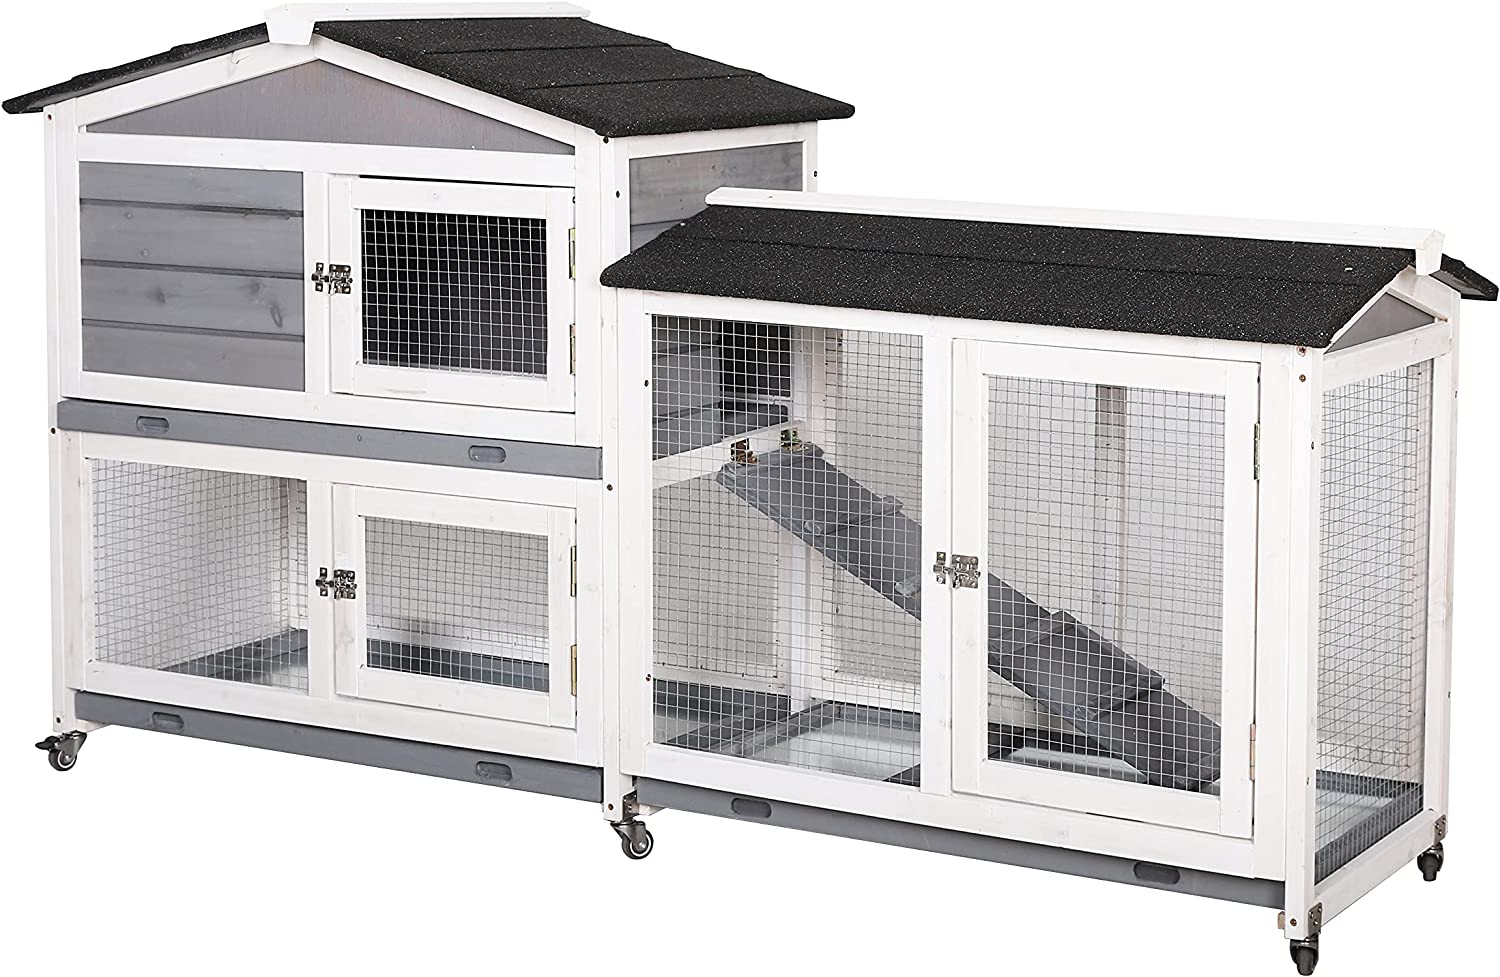 MUPATER Raised Rabbit Hutch Bunny Cage for Outdoor with Casters and  Removable Trays, Large Wooden Guinea Pig House with Run and Ramp for Small  Animal ...